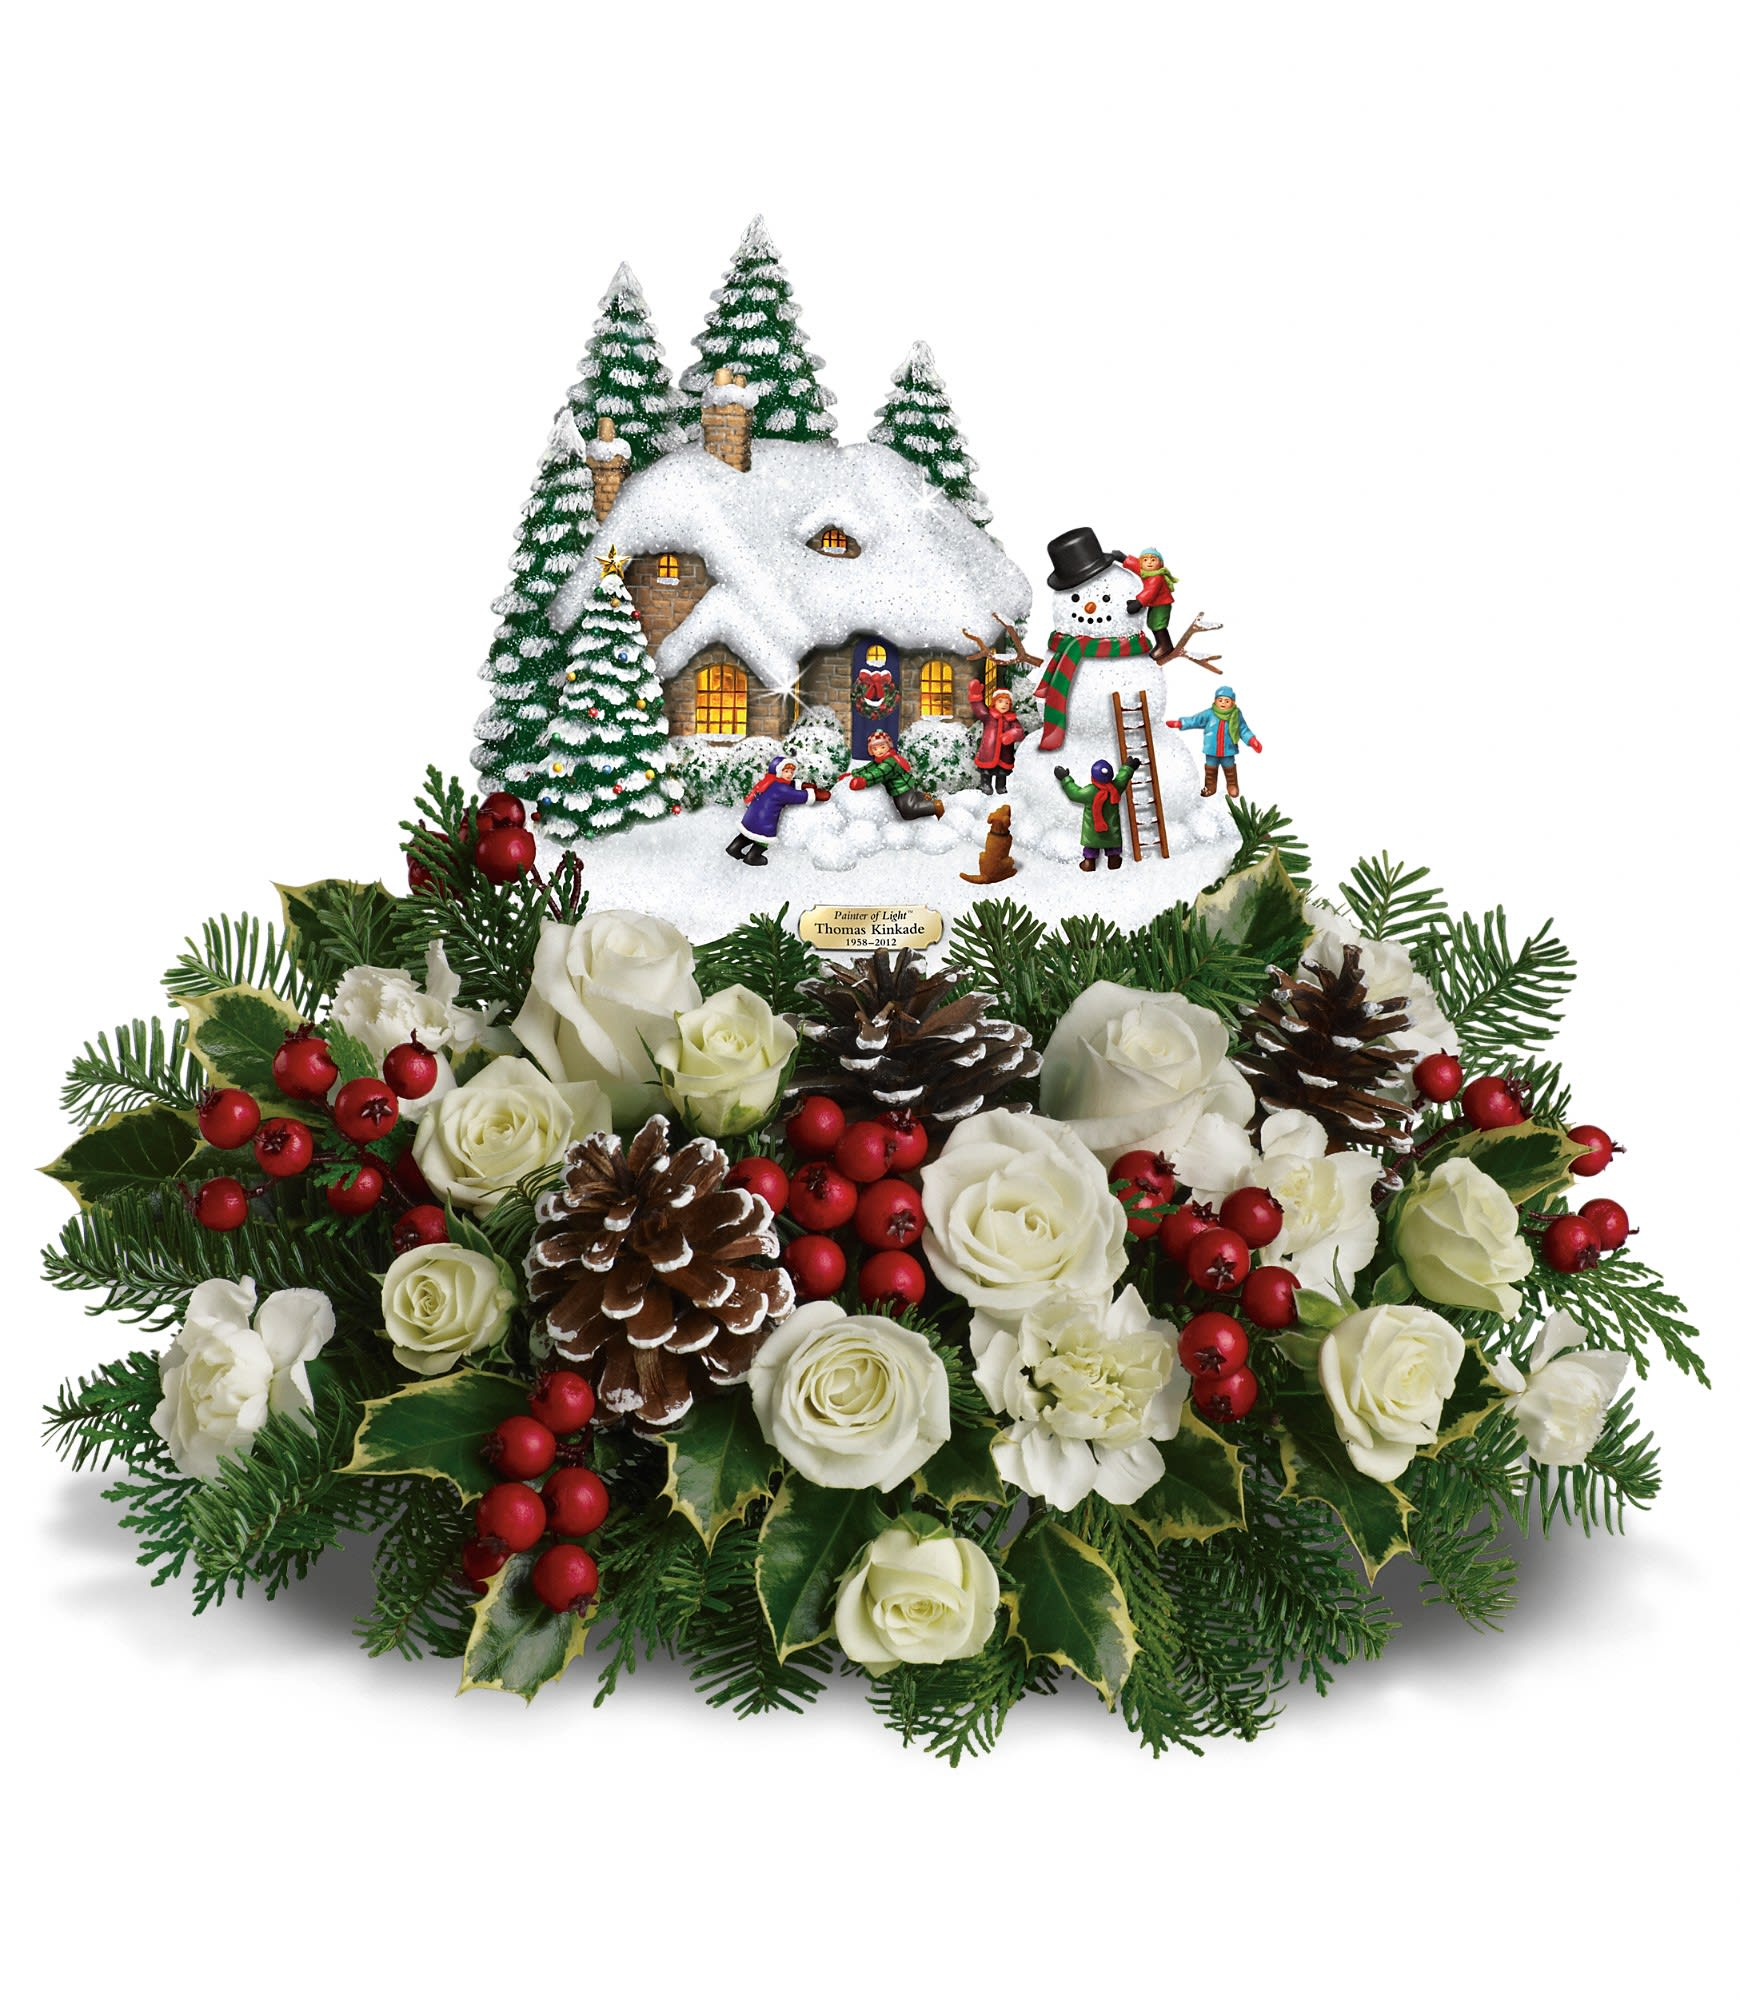 Teleflora Christmas 2019.Thomas Kinkade S Snow Time By Teleflora In Hellertown Pa Andy S And Pennewell S Flower Shop